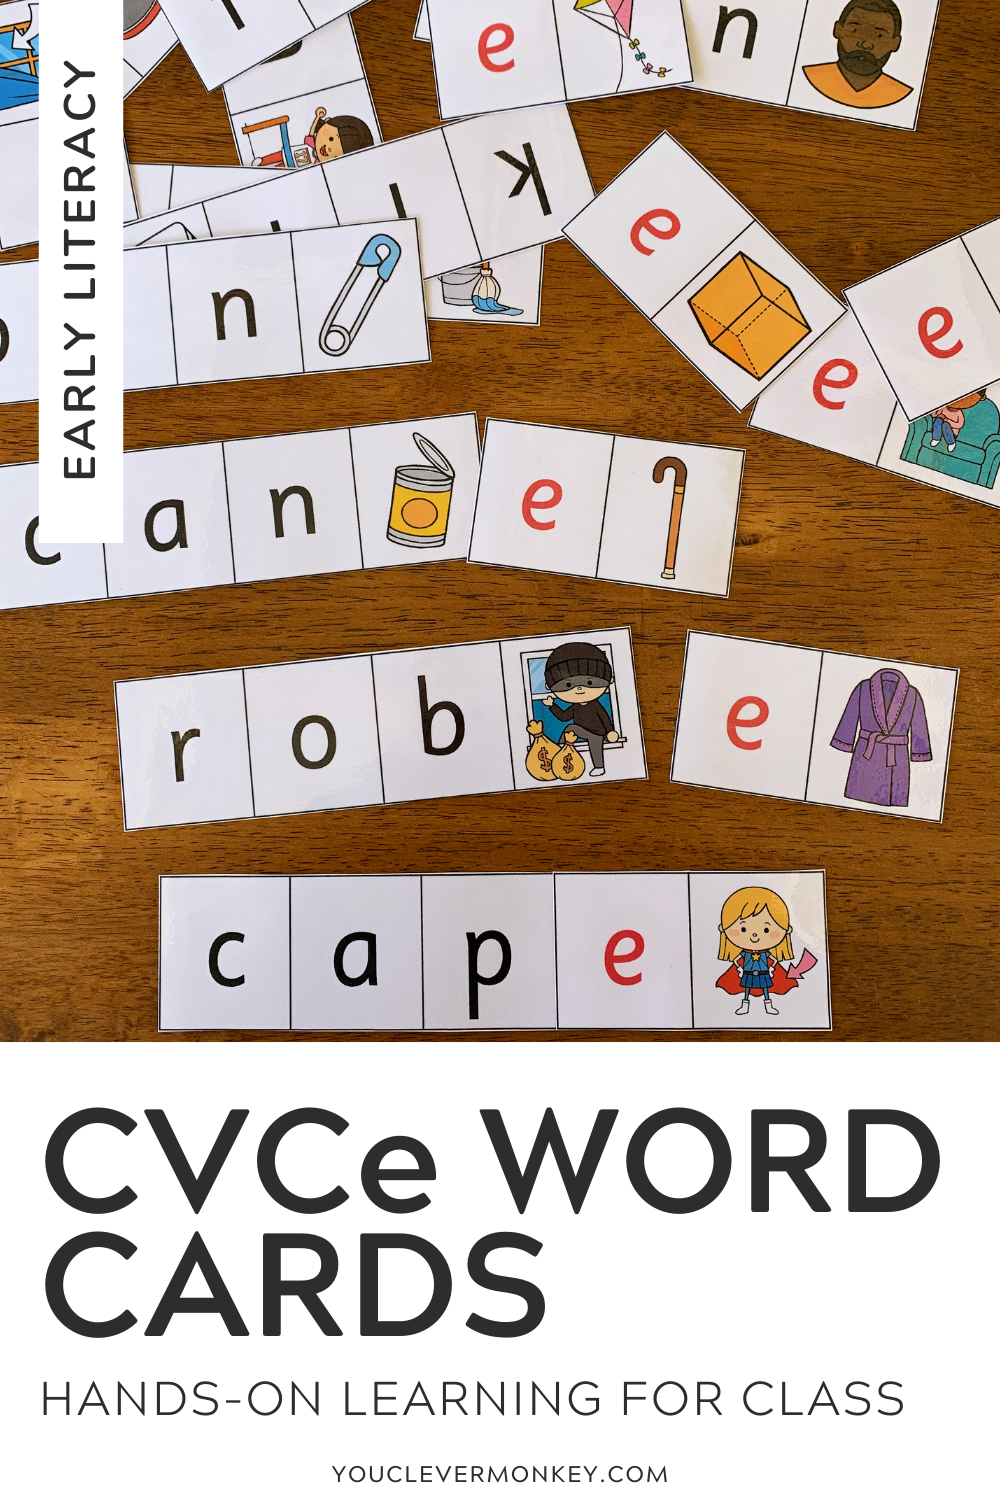 CVC to CVCe Word Cards - Learning the different vowel sounds can be challenging for many young learners. These CVC to CVCe Word cards provide helpful visual support for children struggling with the change in vowel sounds from short to long to create CVCe words from CVC words.  Starting with a CVC word card (three-letter word plus picture), children are then asked to add the 'e' sound changing the vowel from a short sound (/a/ like in c/a/t) to word with a long sound (/a/ like in c/a/k/e). Answer cards and recording sheets have been included to allow children to work independently | you clever monkey